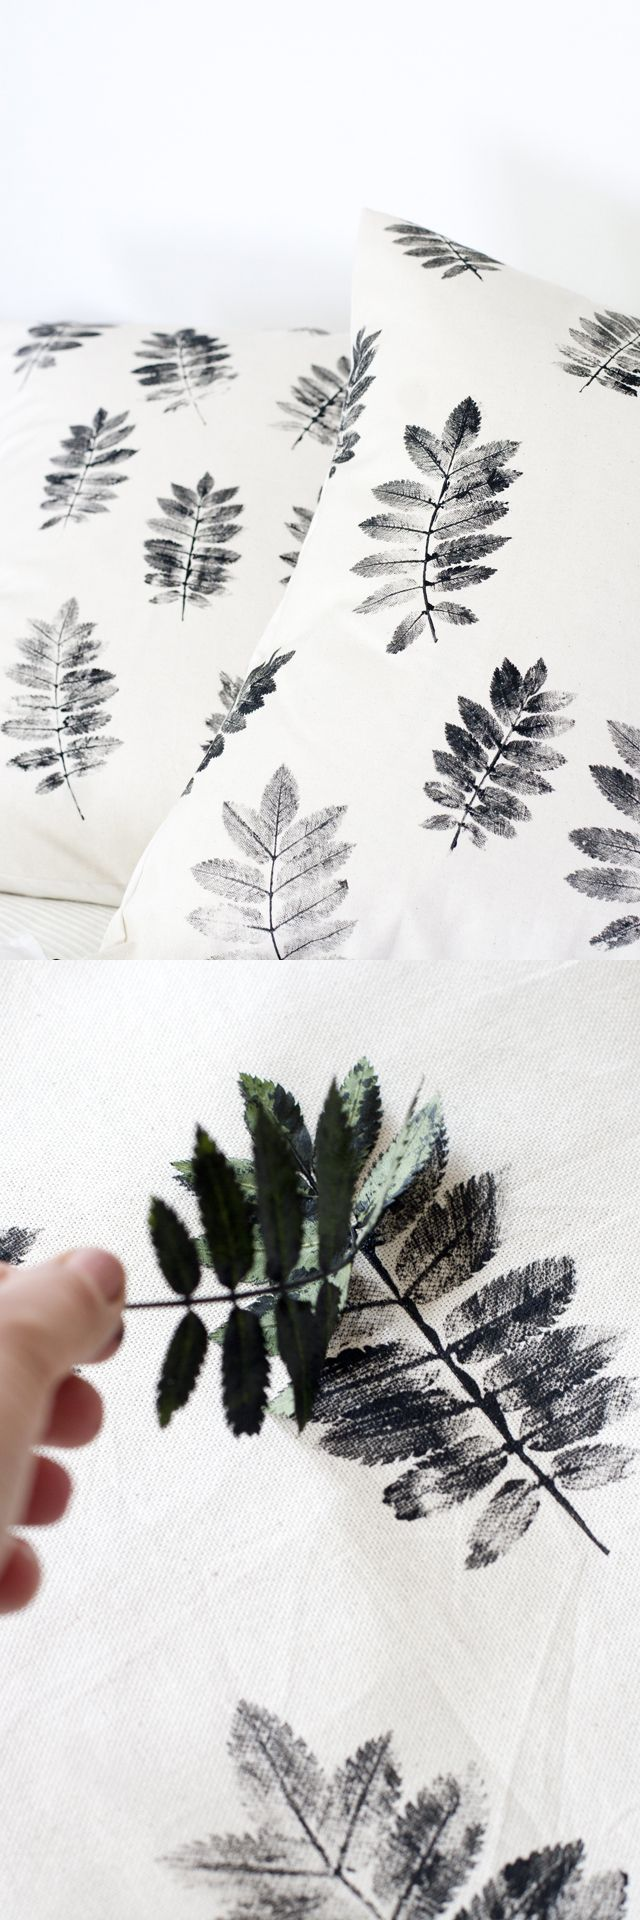 Pillow | stamps | DIY | crafts idea | hello fall | weekend project More